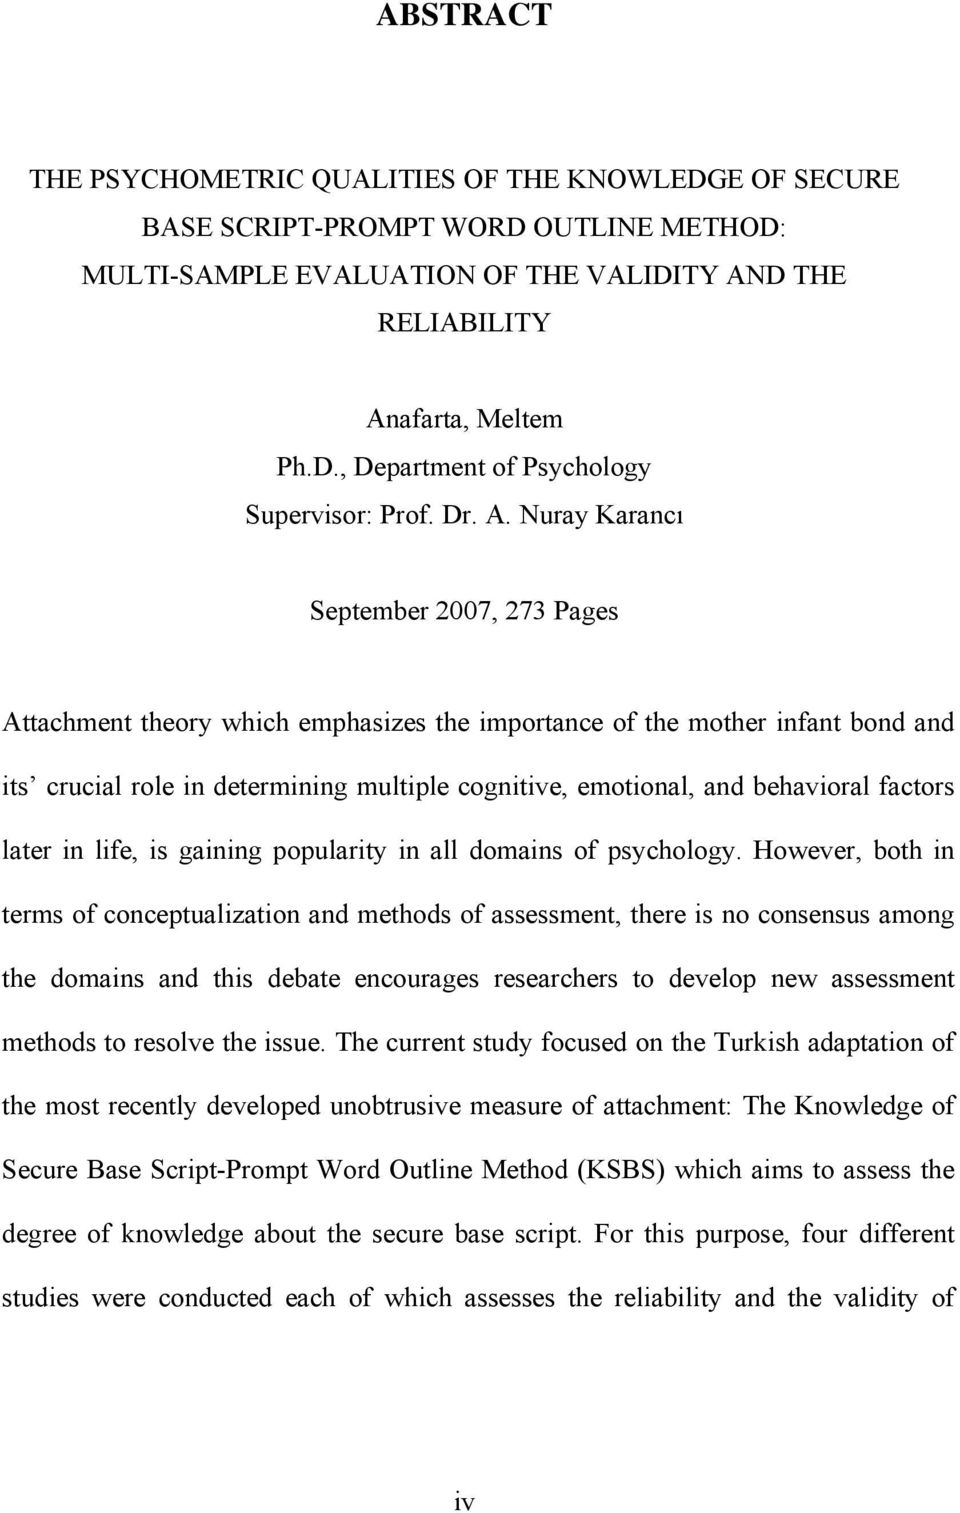 Nuray Karancı September 2007, 273 Pages Attachment theory which emphasizes the importance of the mother infant bond and its crucial role in determining multiple cognitive, emotional, and behavioral